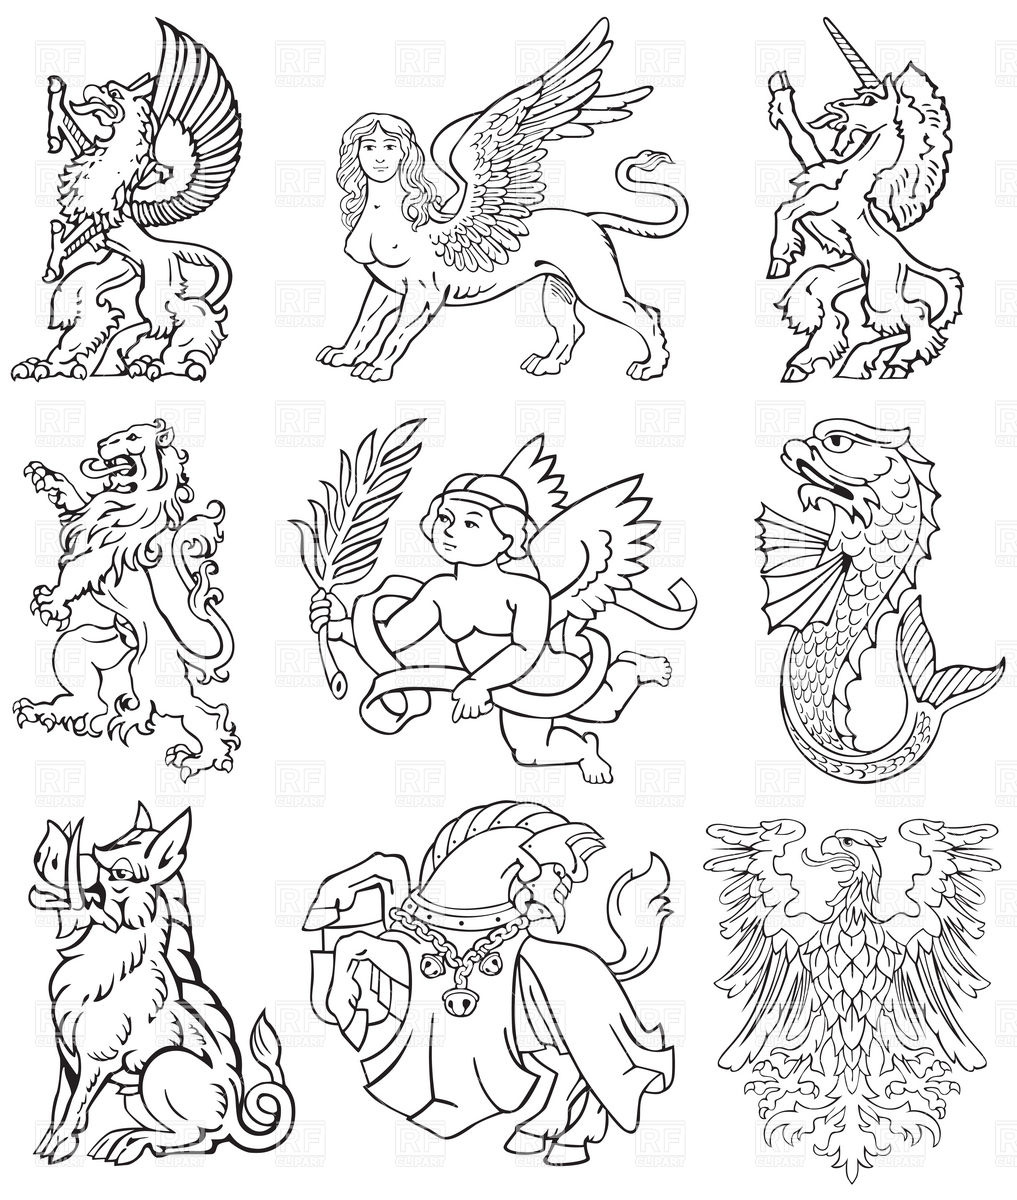 Mystical clipart #4, Download drawings